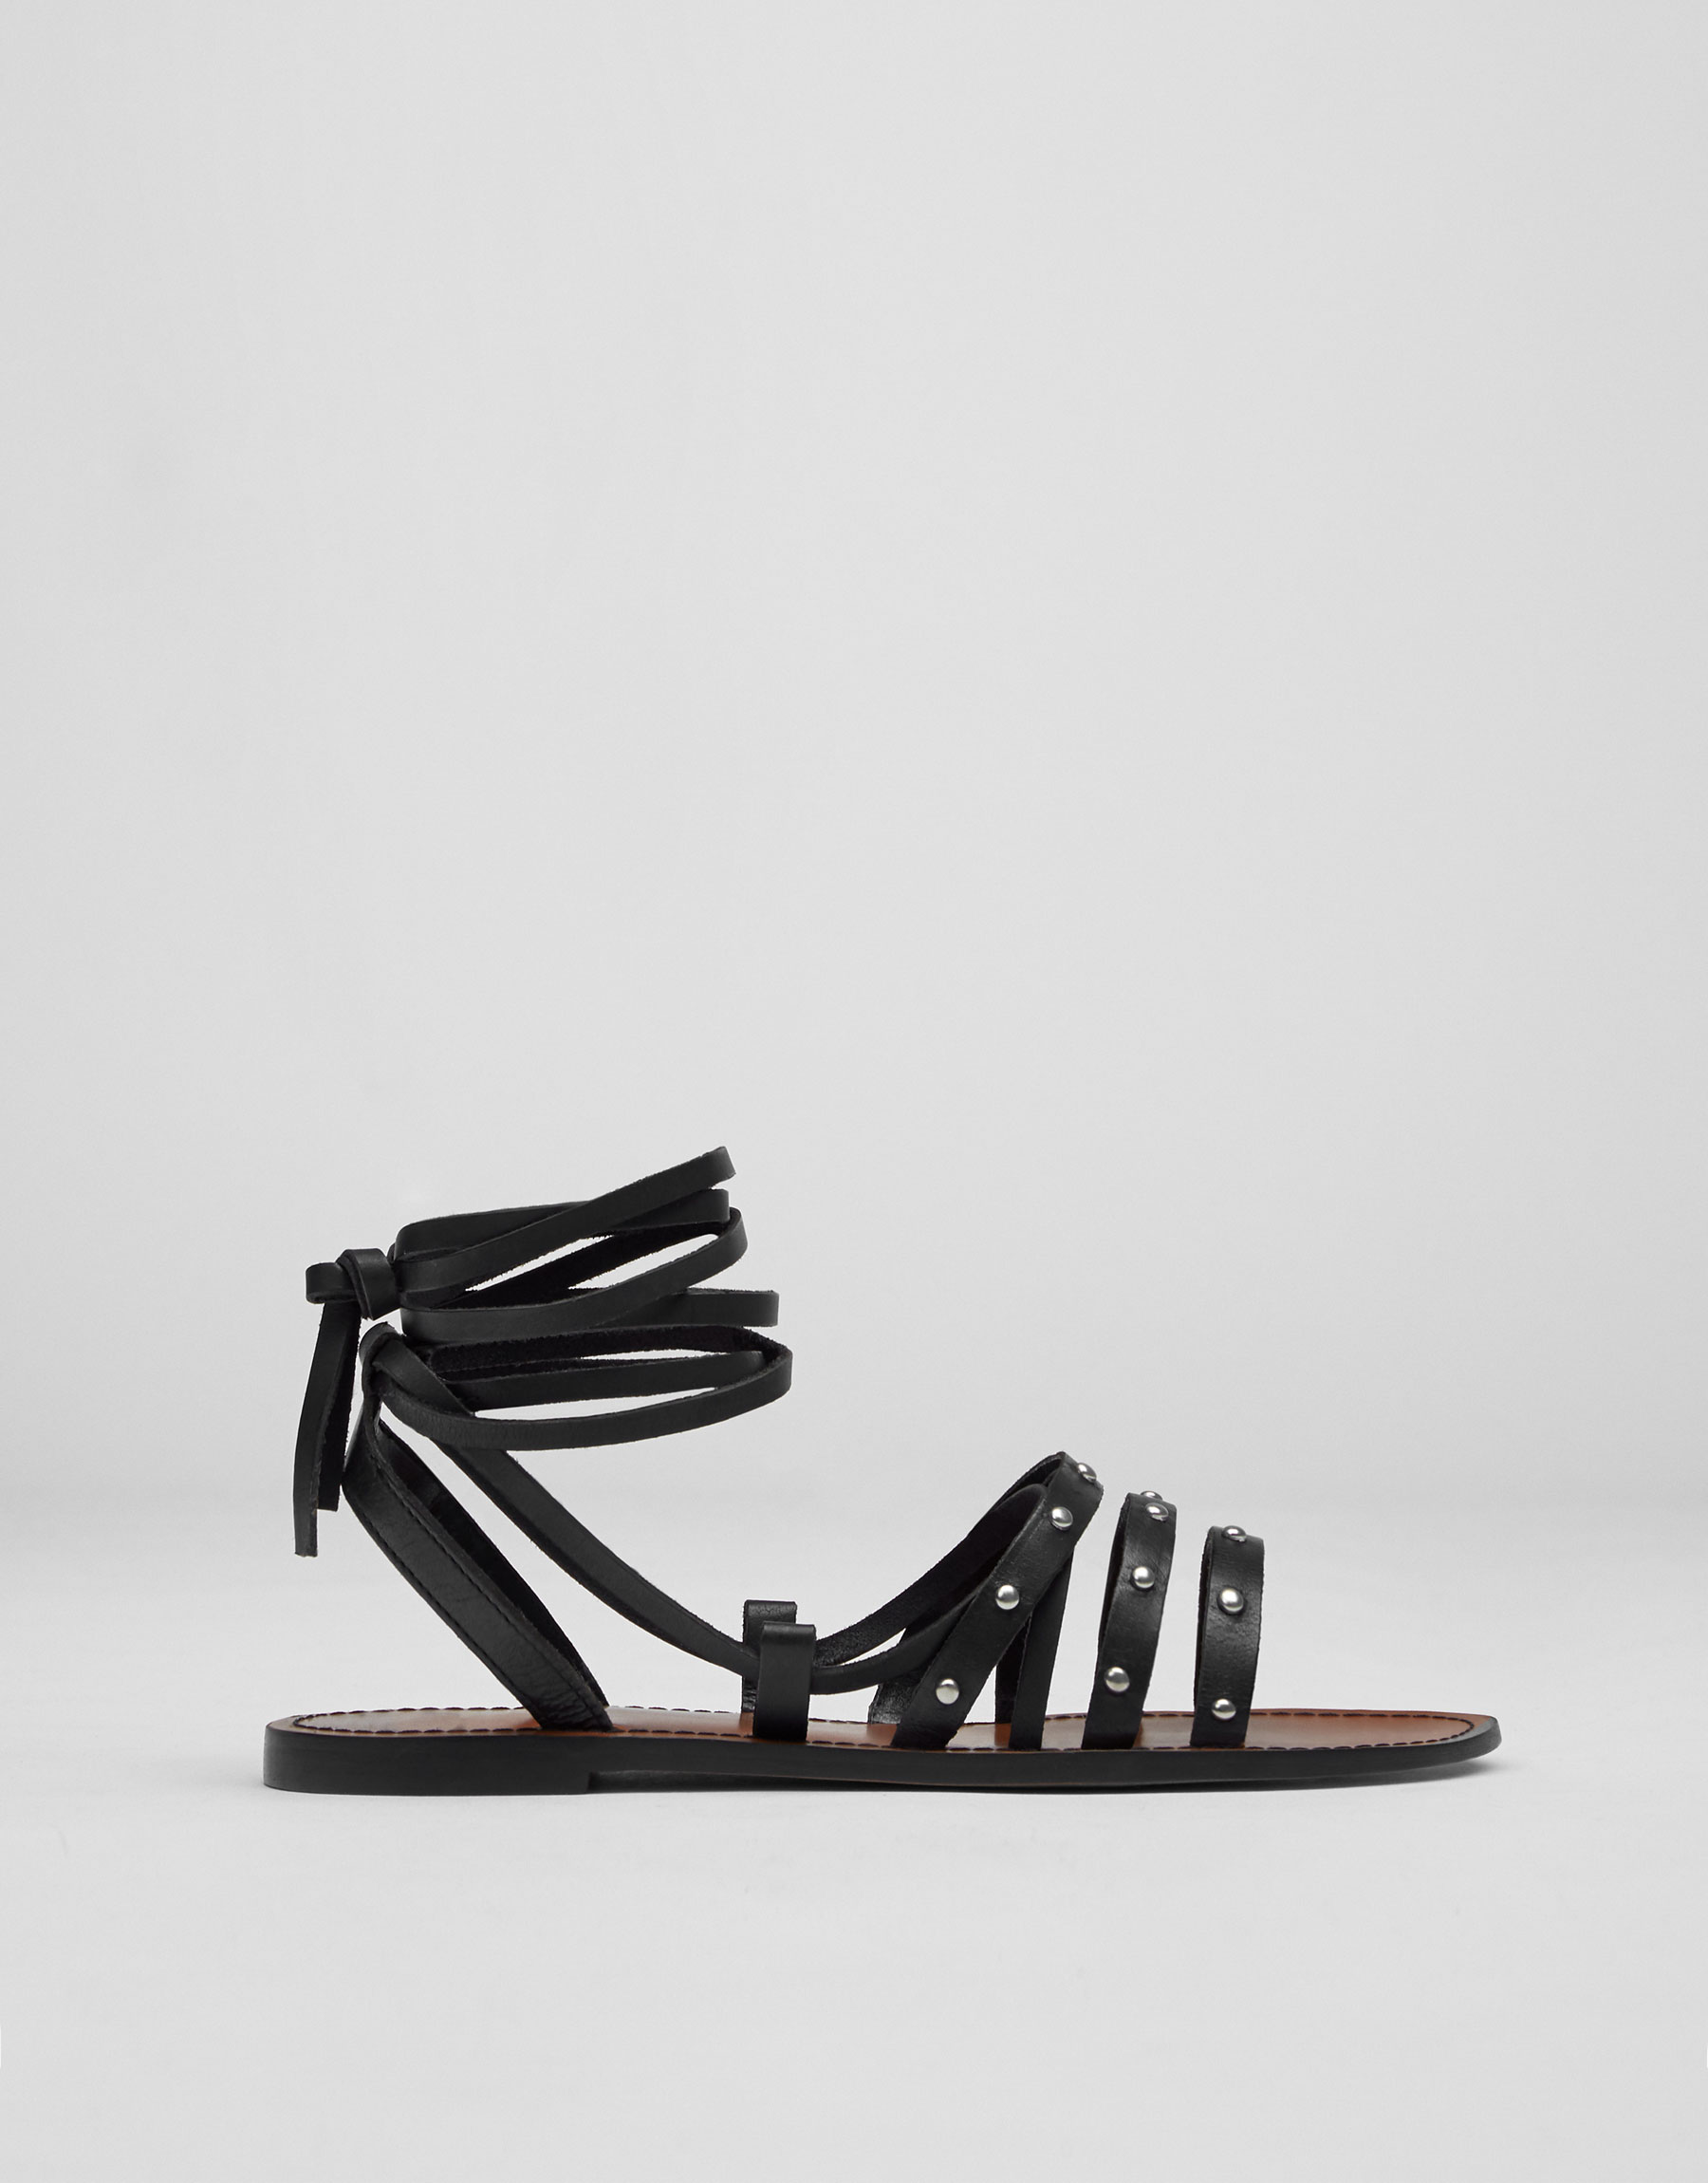 Black leather sandals with studs